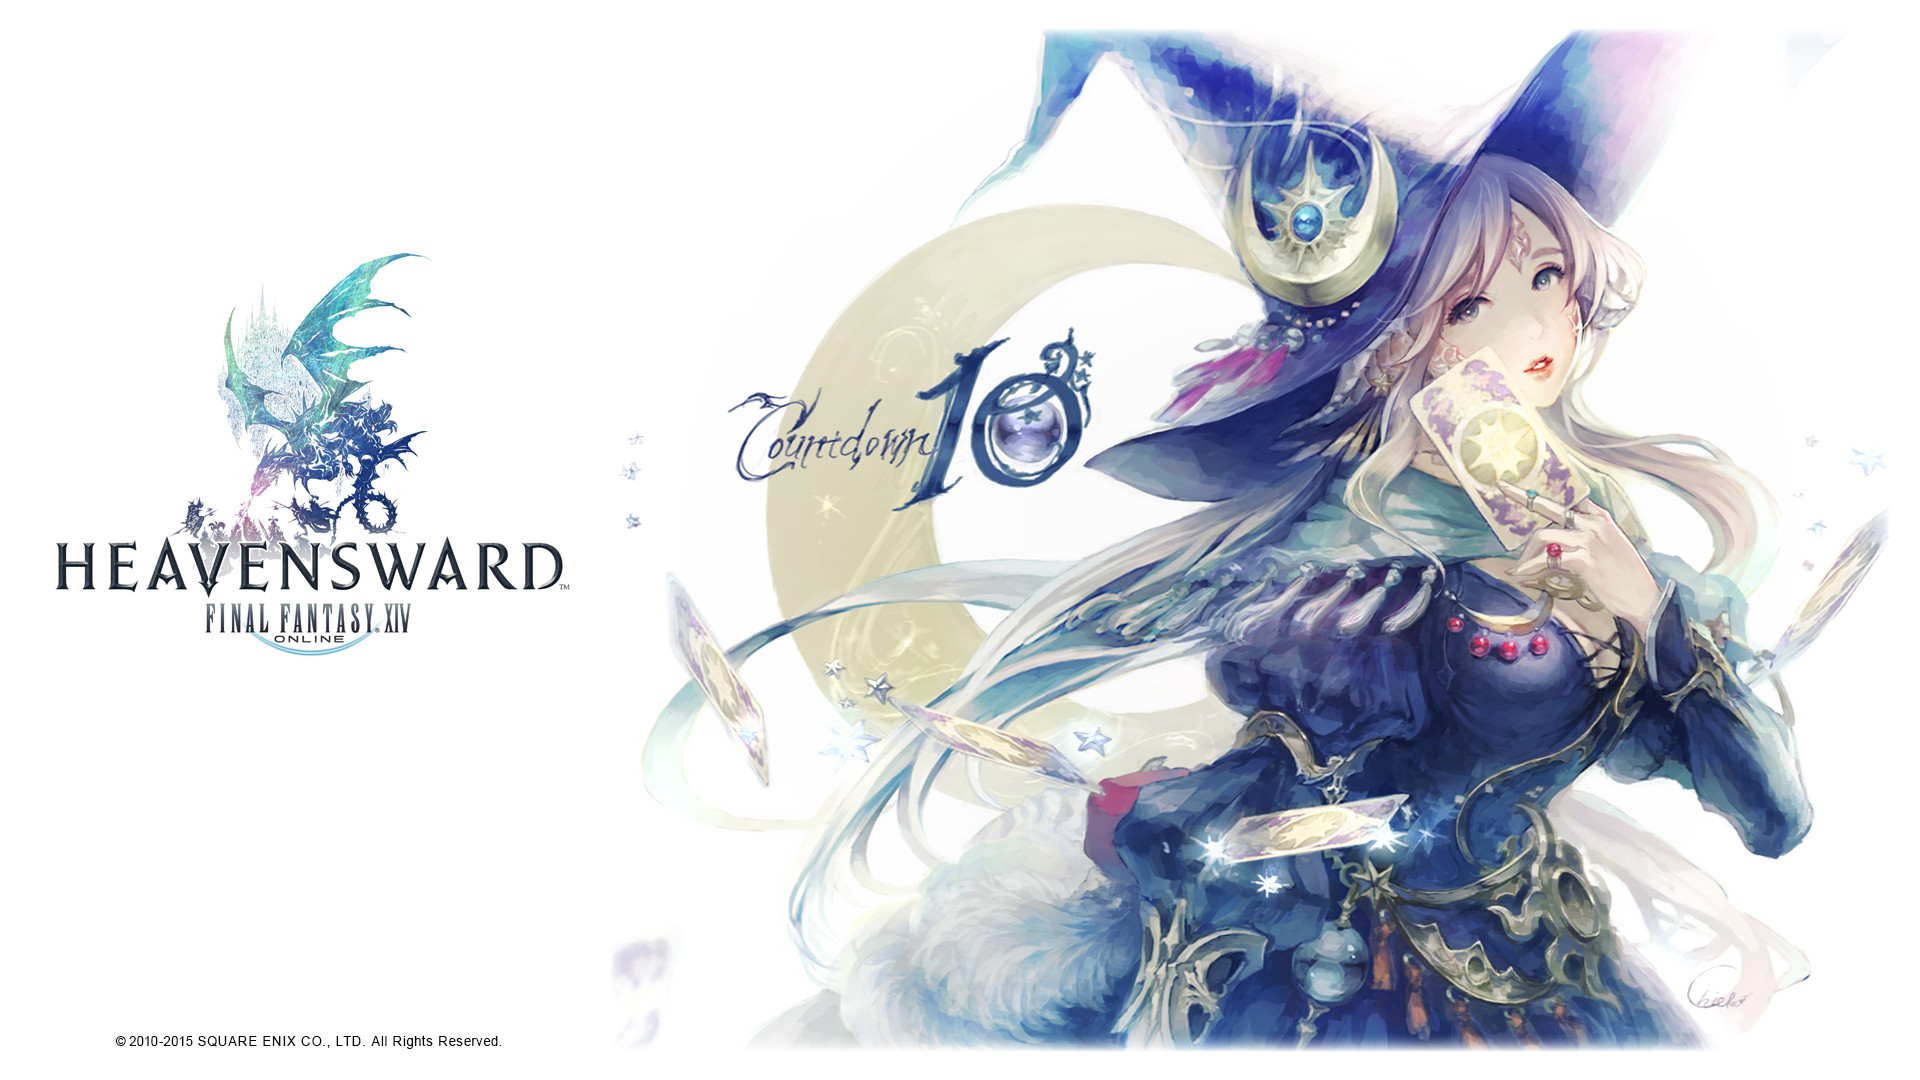 Ffxiv Heavensward Wallpapers Hd Wallpaper Collections